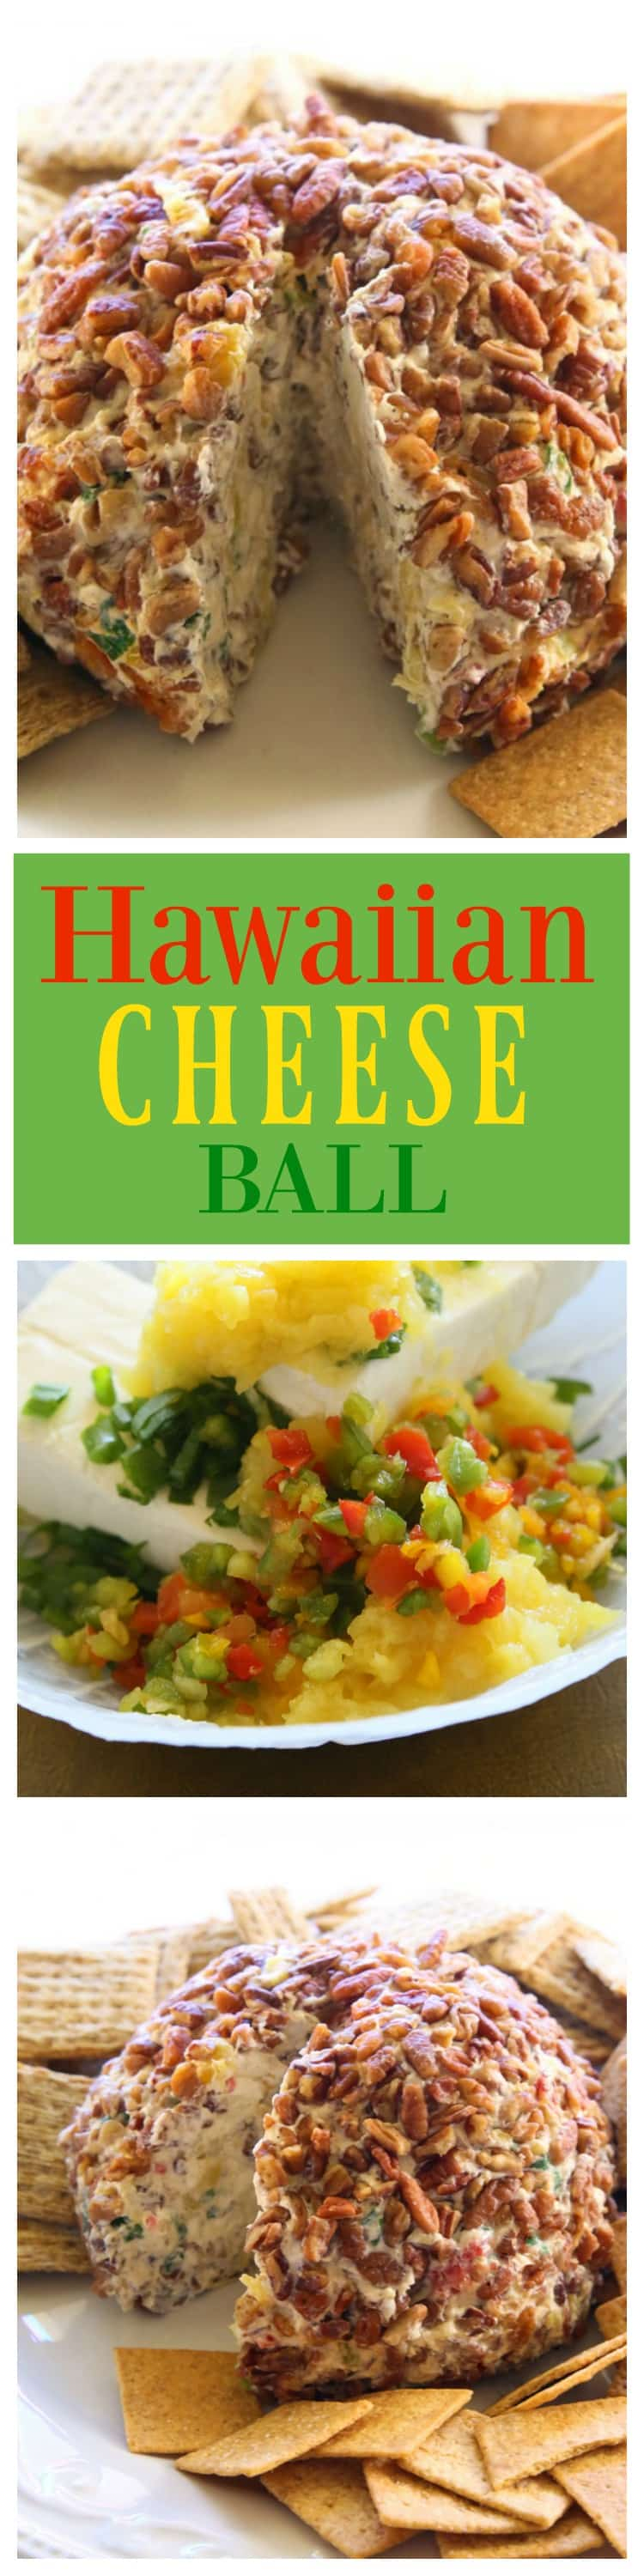 Hawaiian Cheese Ball - a cream cheese ball with crushed pineapple, green onions, and bell pepper. This is such a crowd pleaser. #hawaiian #cheese #ball #appetizer #recipe